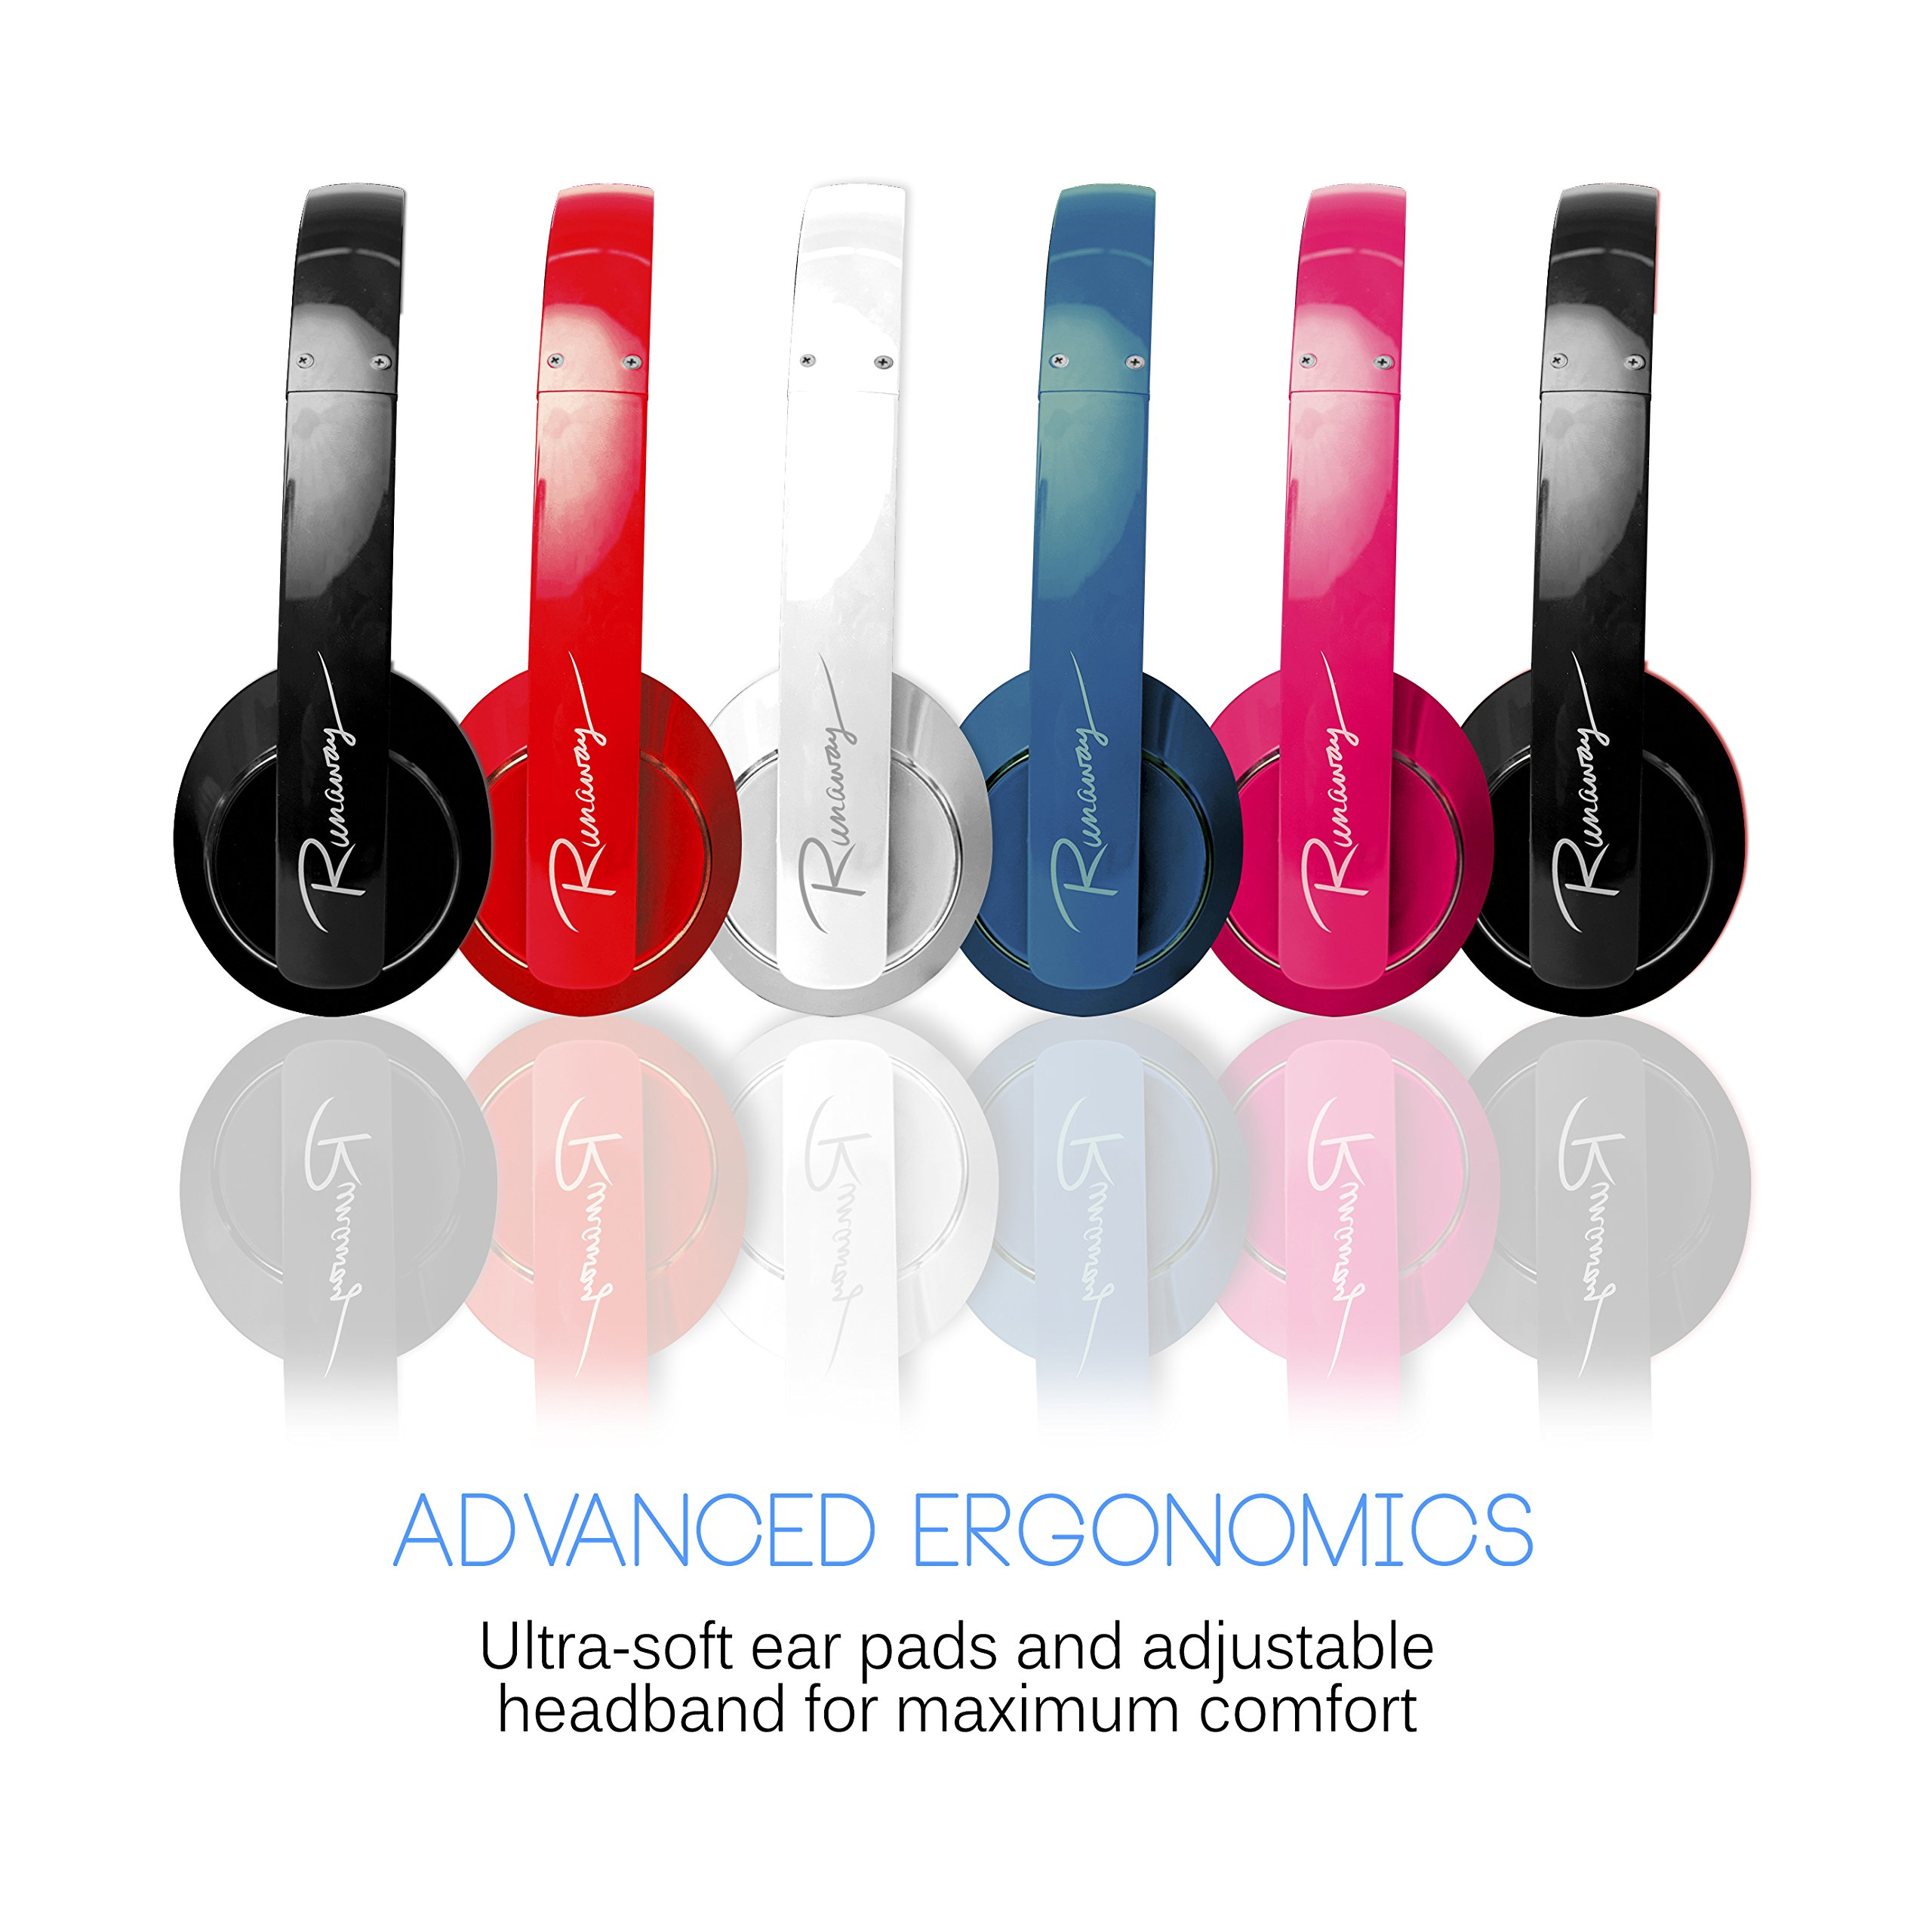 MEE audio Runaway 4.0 Bluetooth Stereo Wireless + Wired Headphones with Microphone (Black) by MEE audio (Image #6)